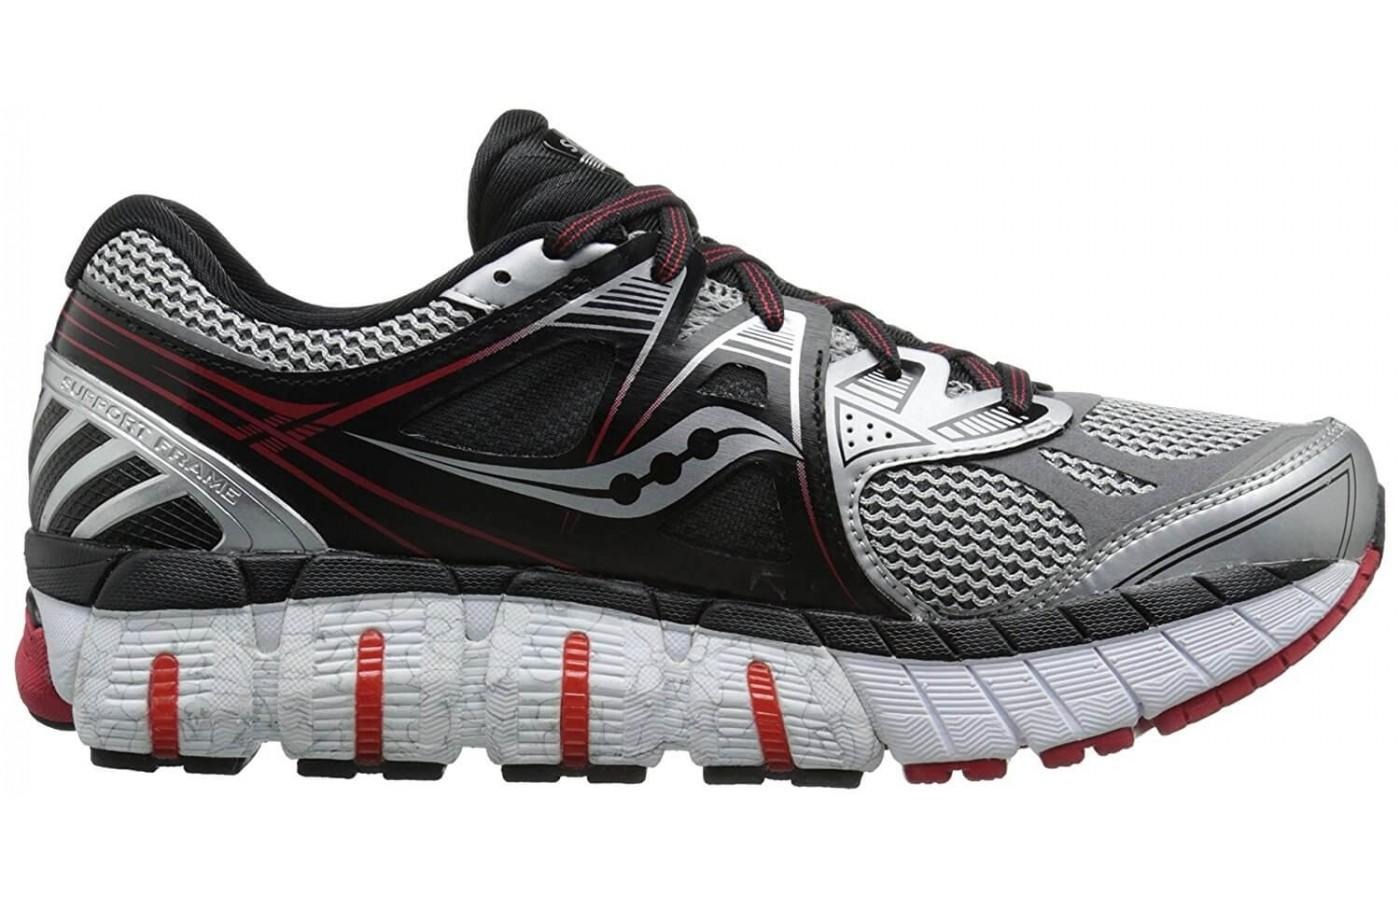 Saucony Redeemer ISO features are perfect for overpronators